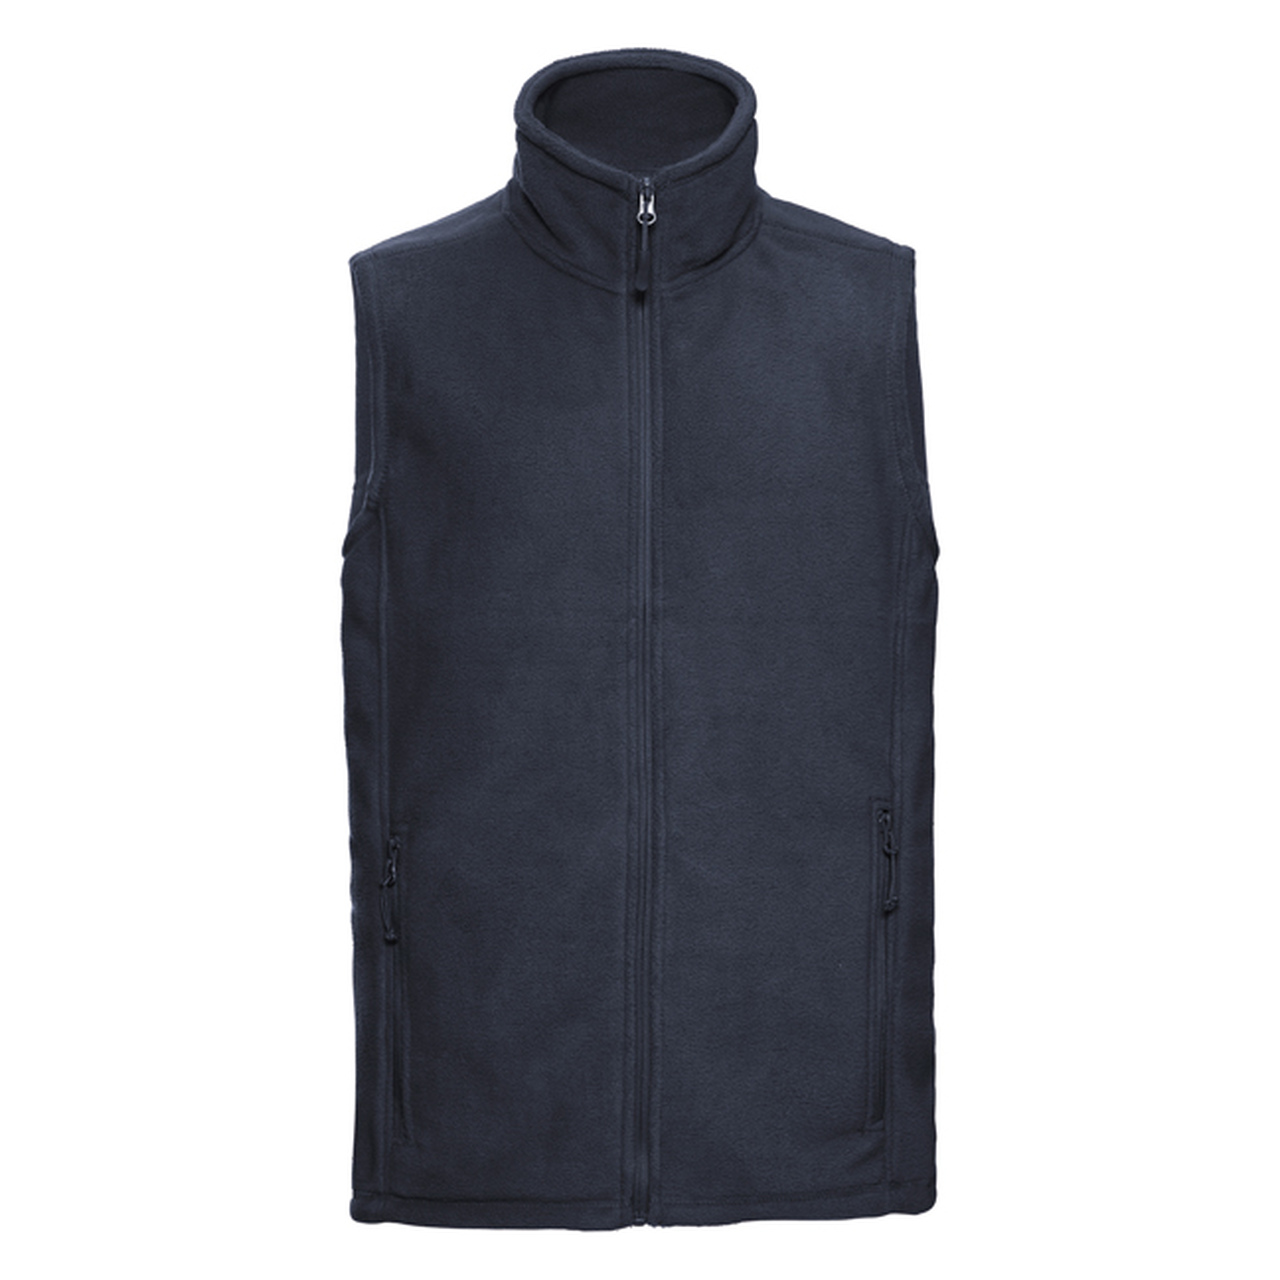 Kamizelka polarowa Outdoor Fleece | Russell